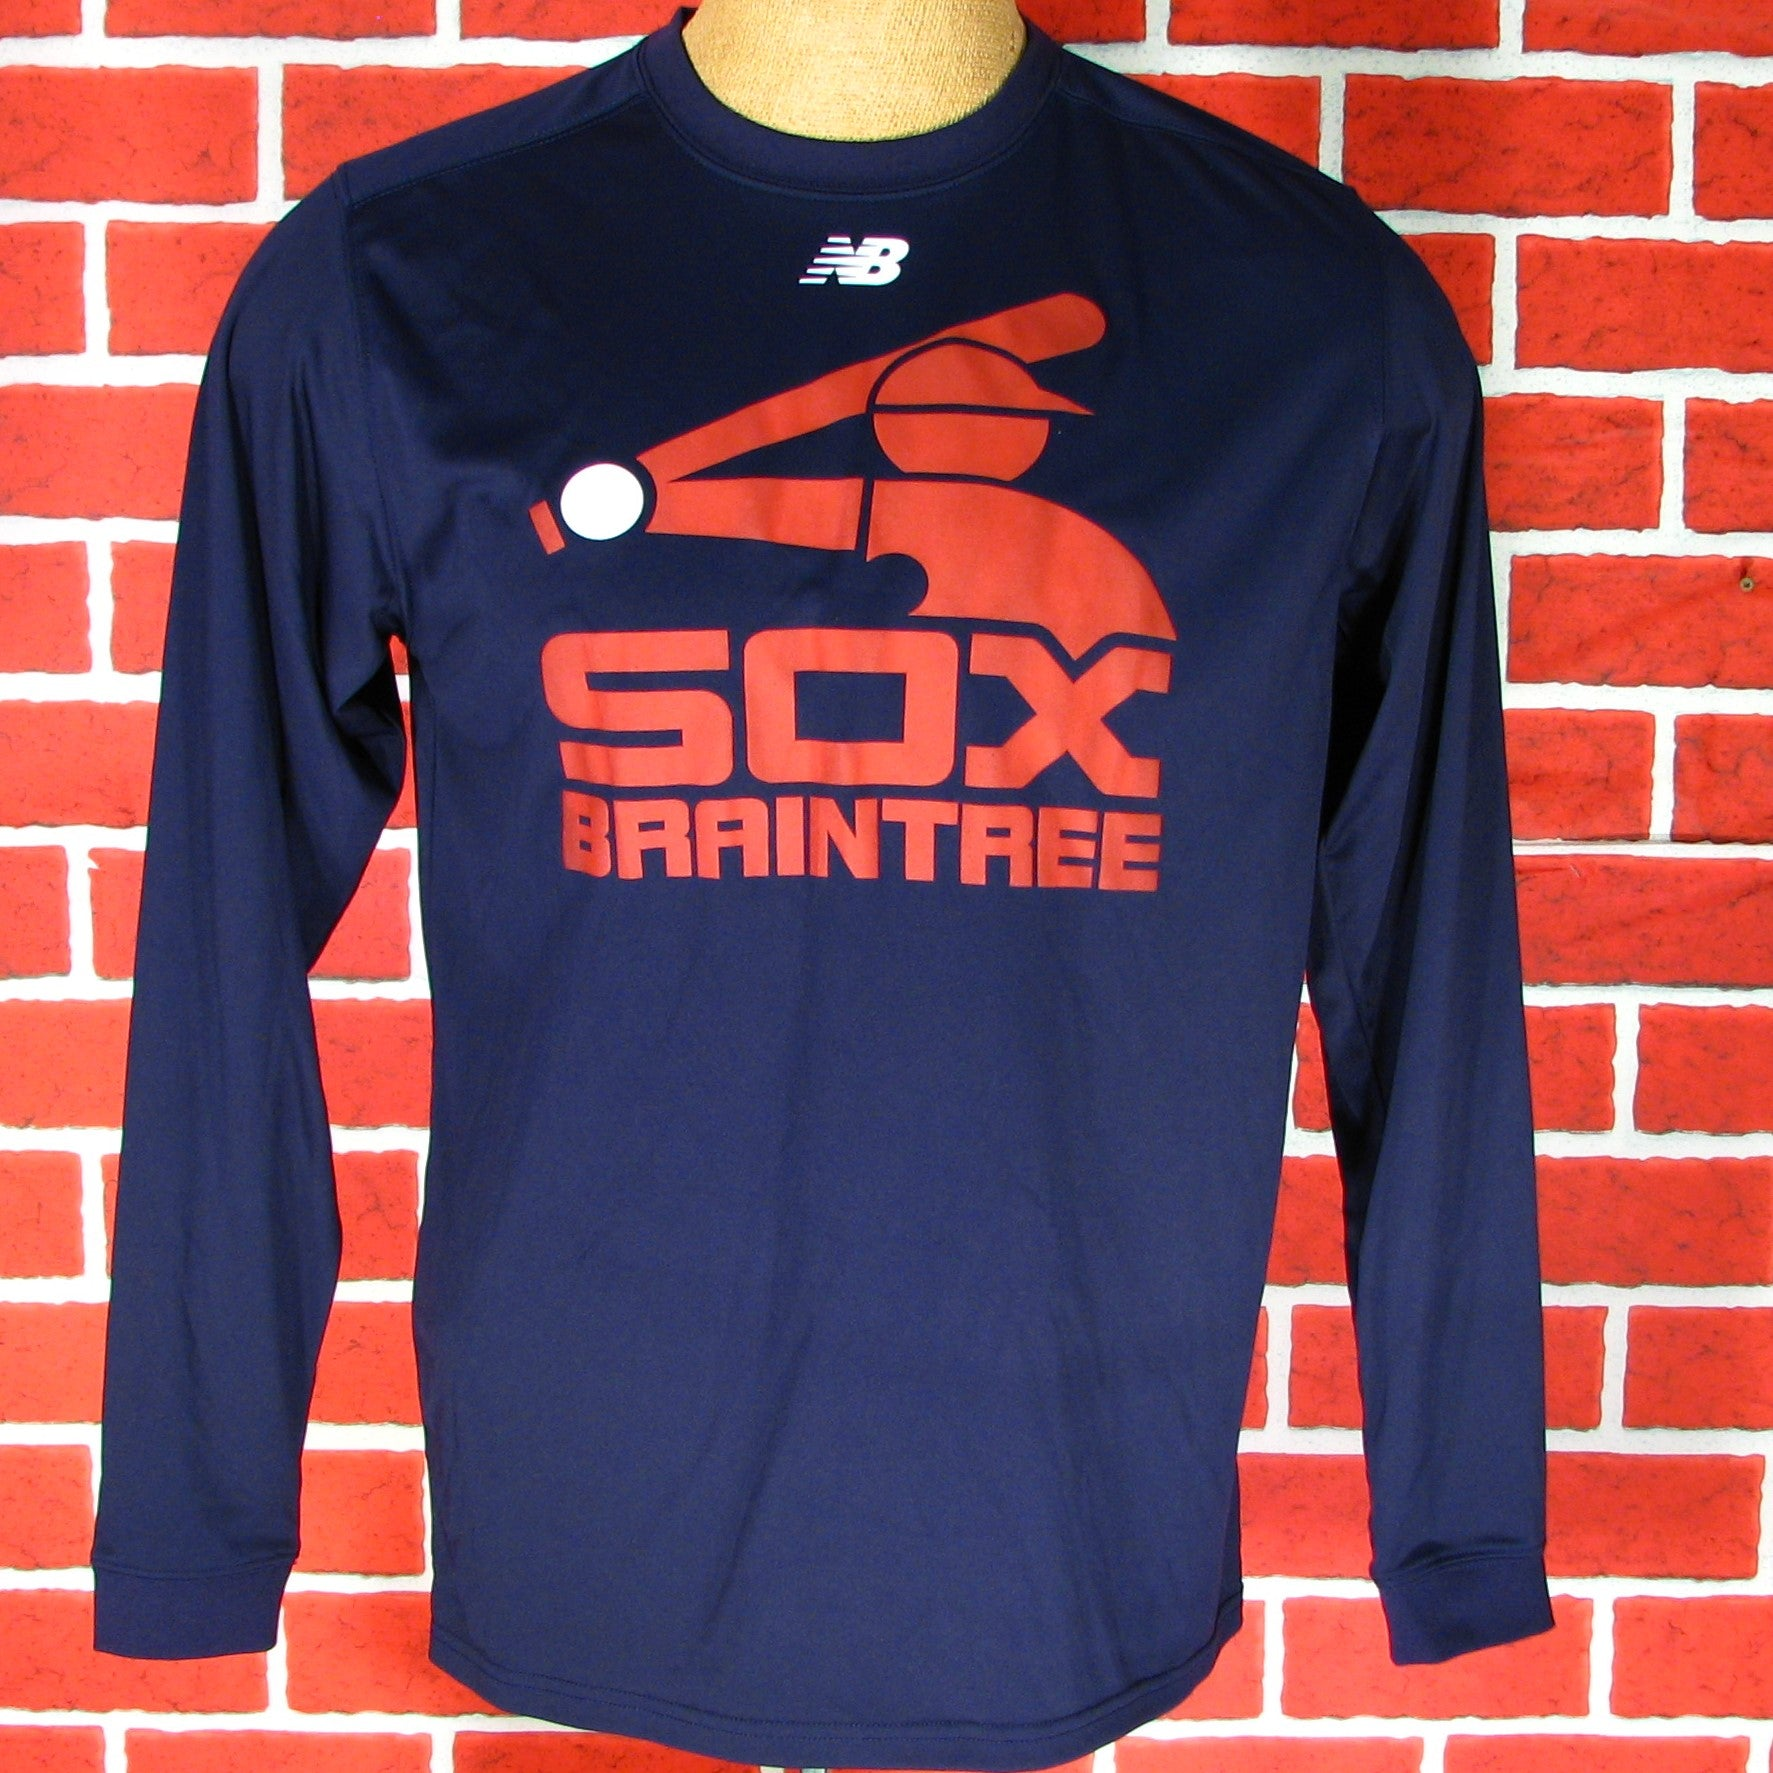 Sox Braintree Long Sleeve T-Shirt